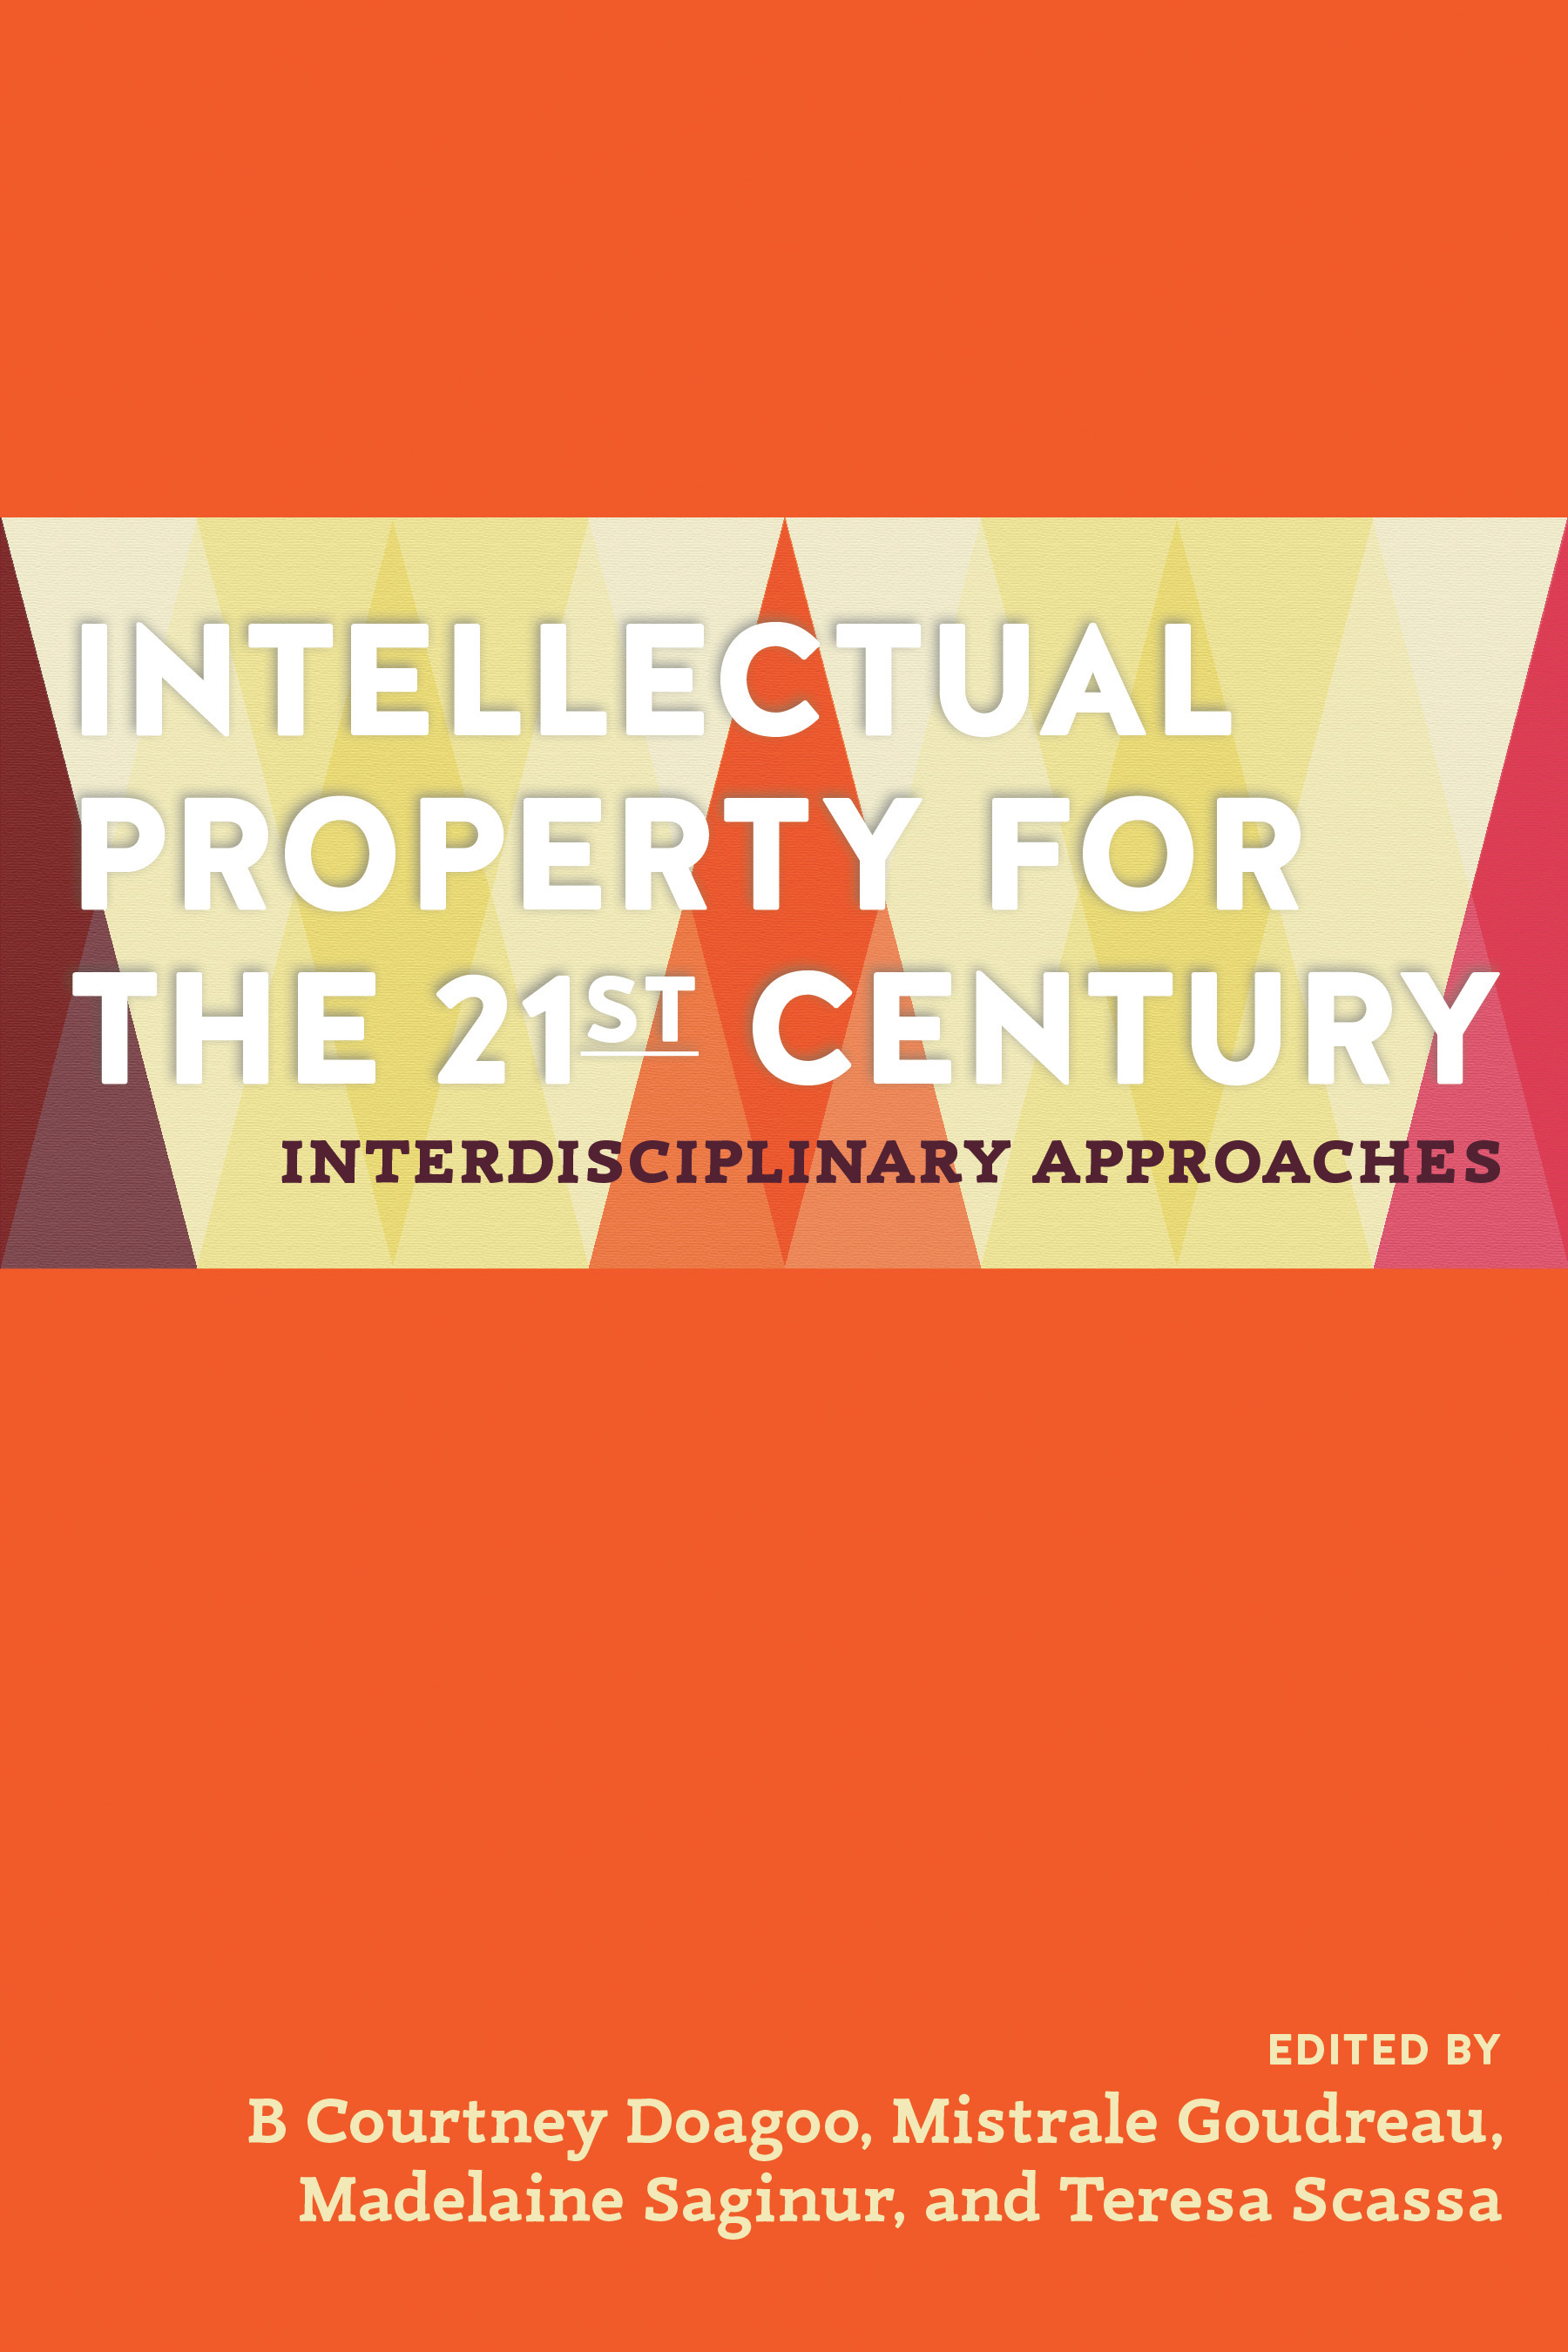 Intellectual Property for the 21st Century